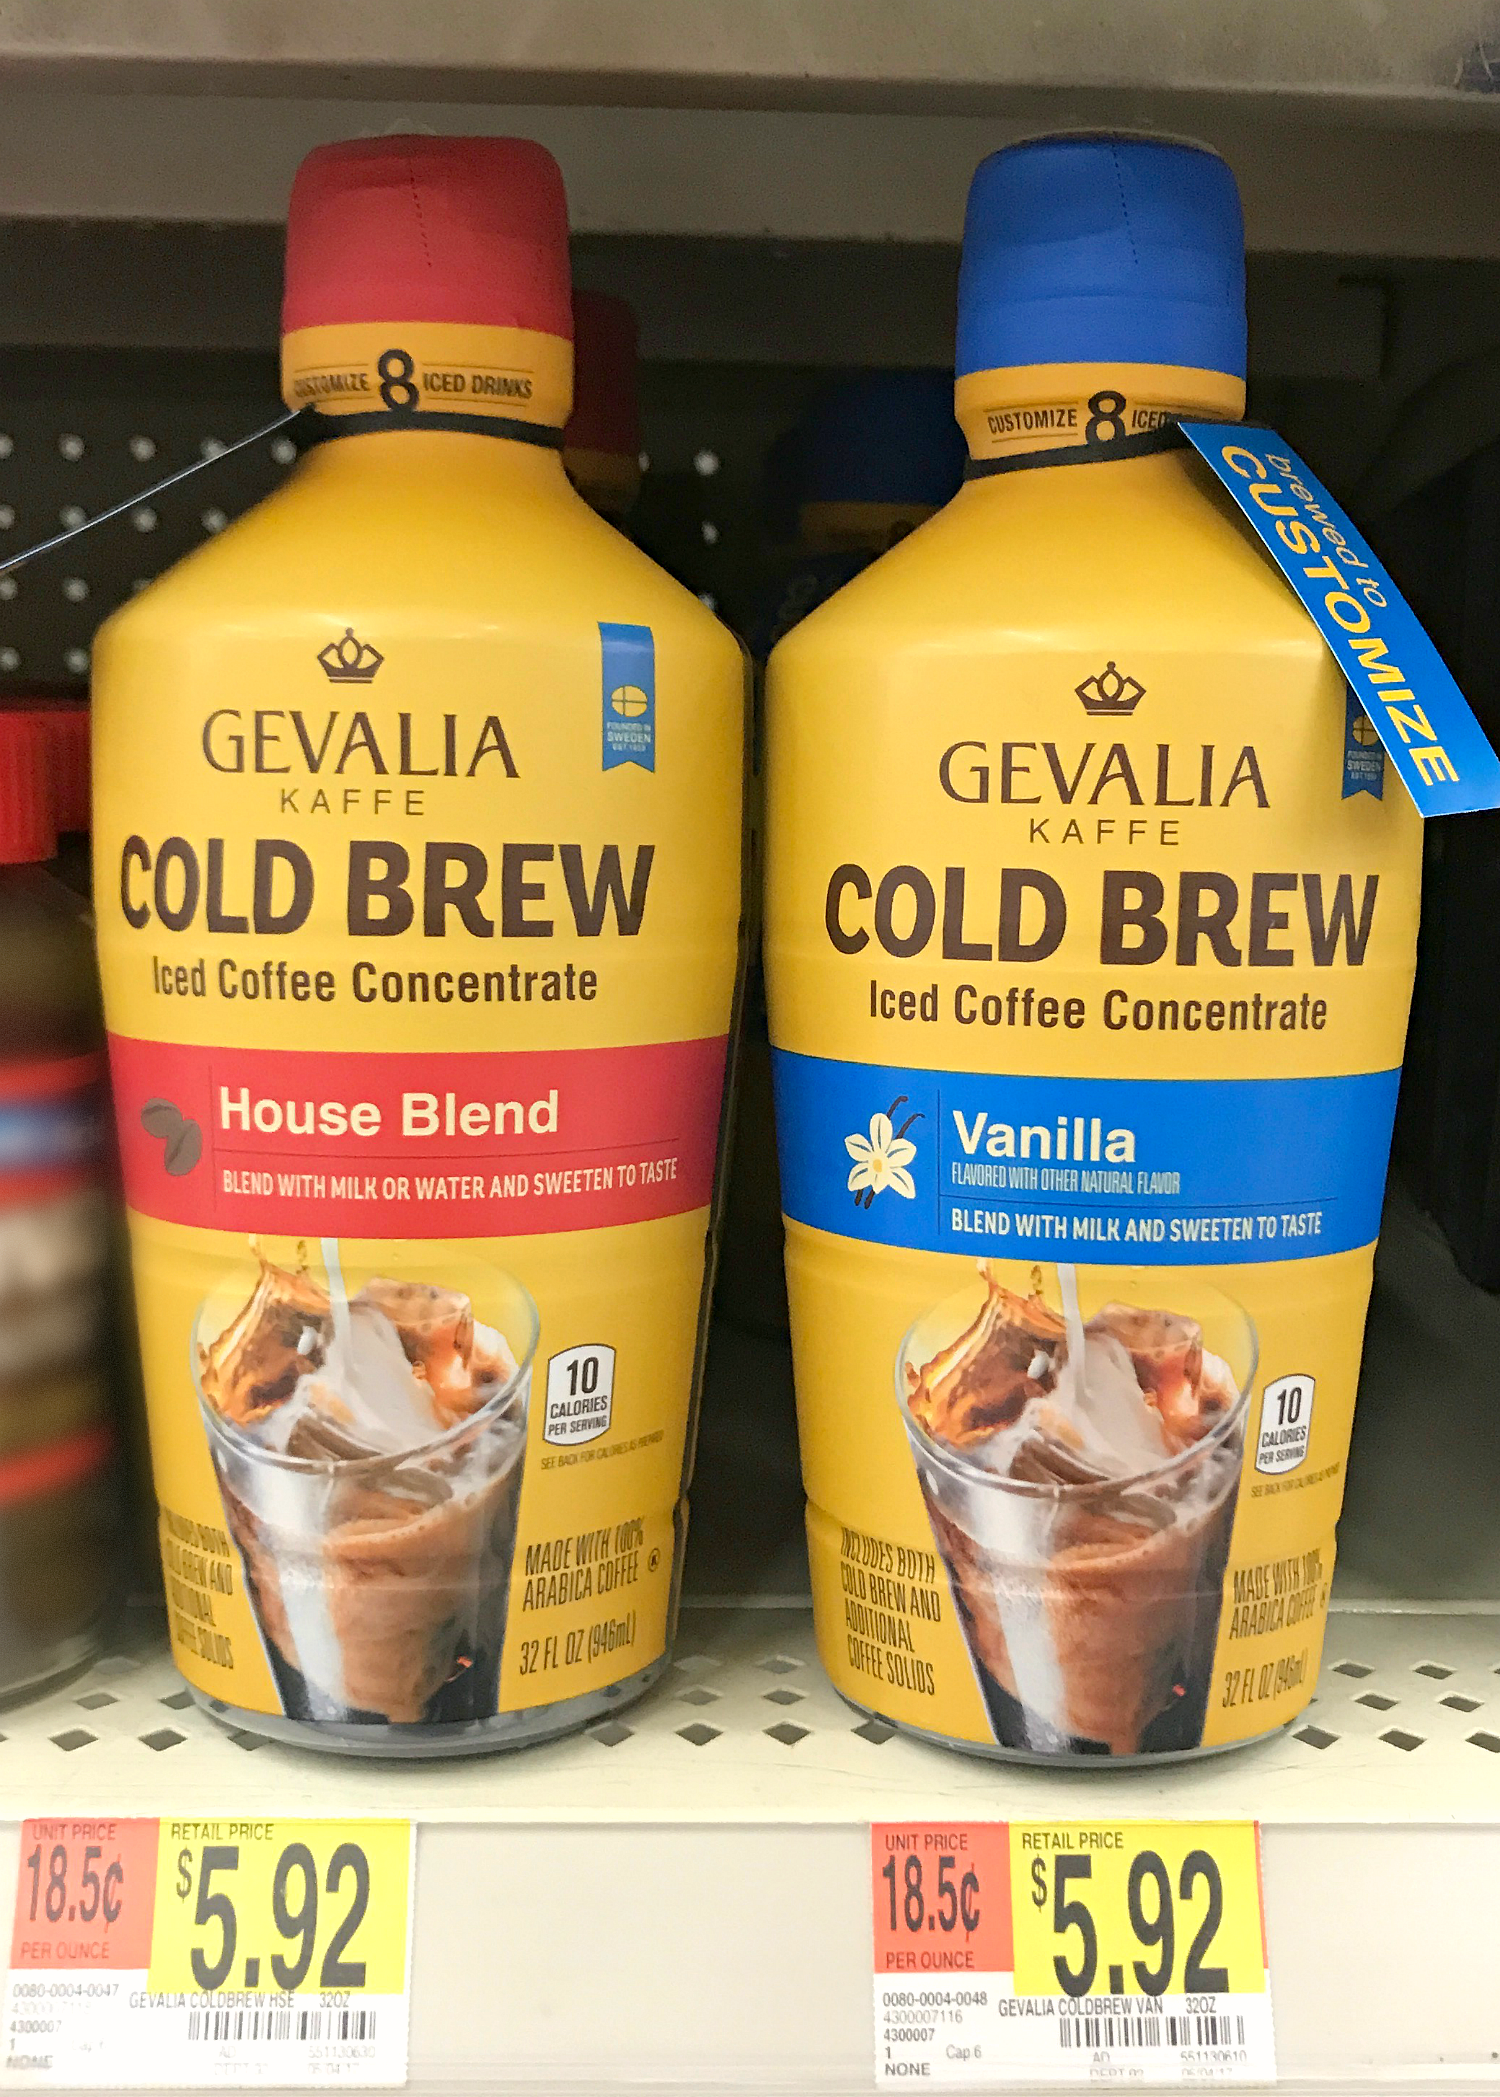 Gevalia Cold Brew at Walmart